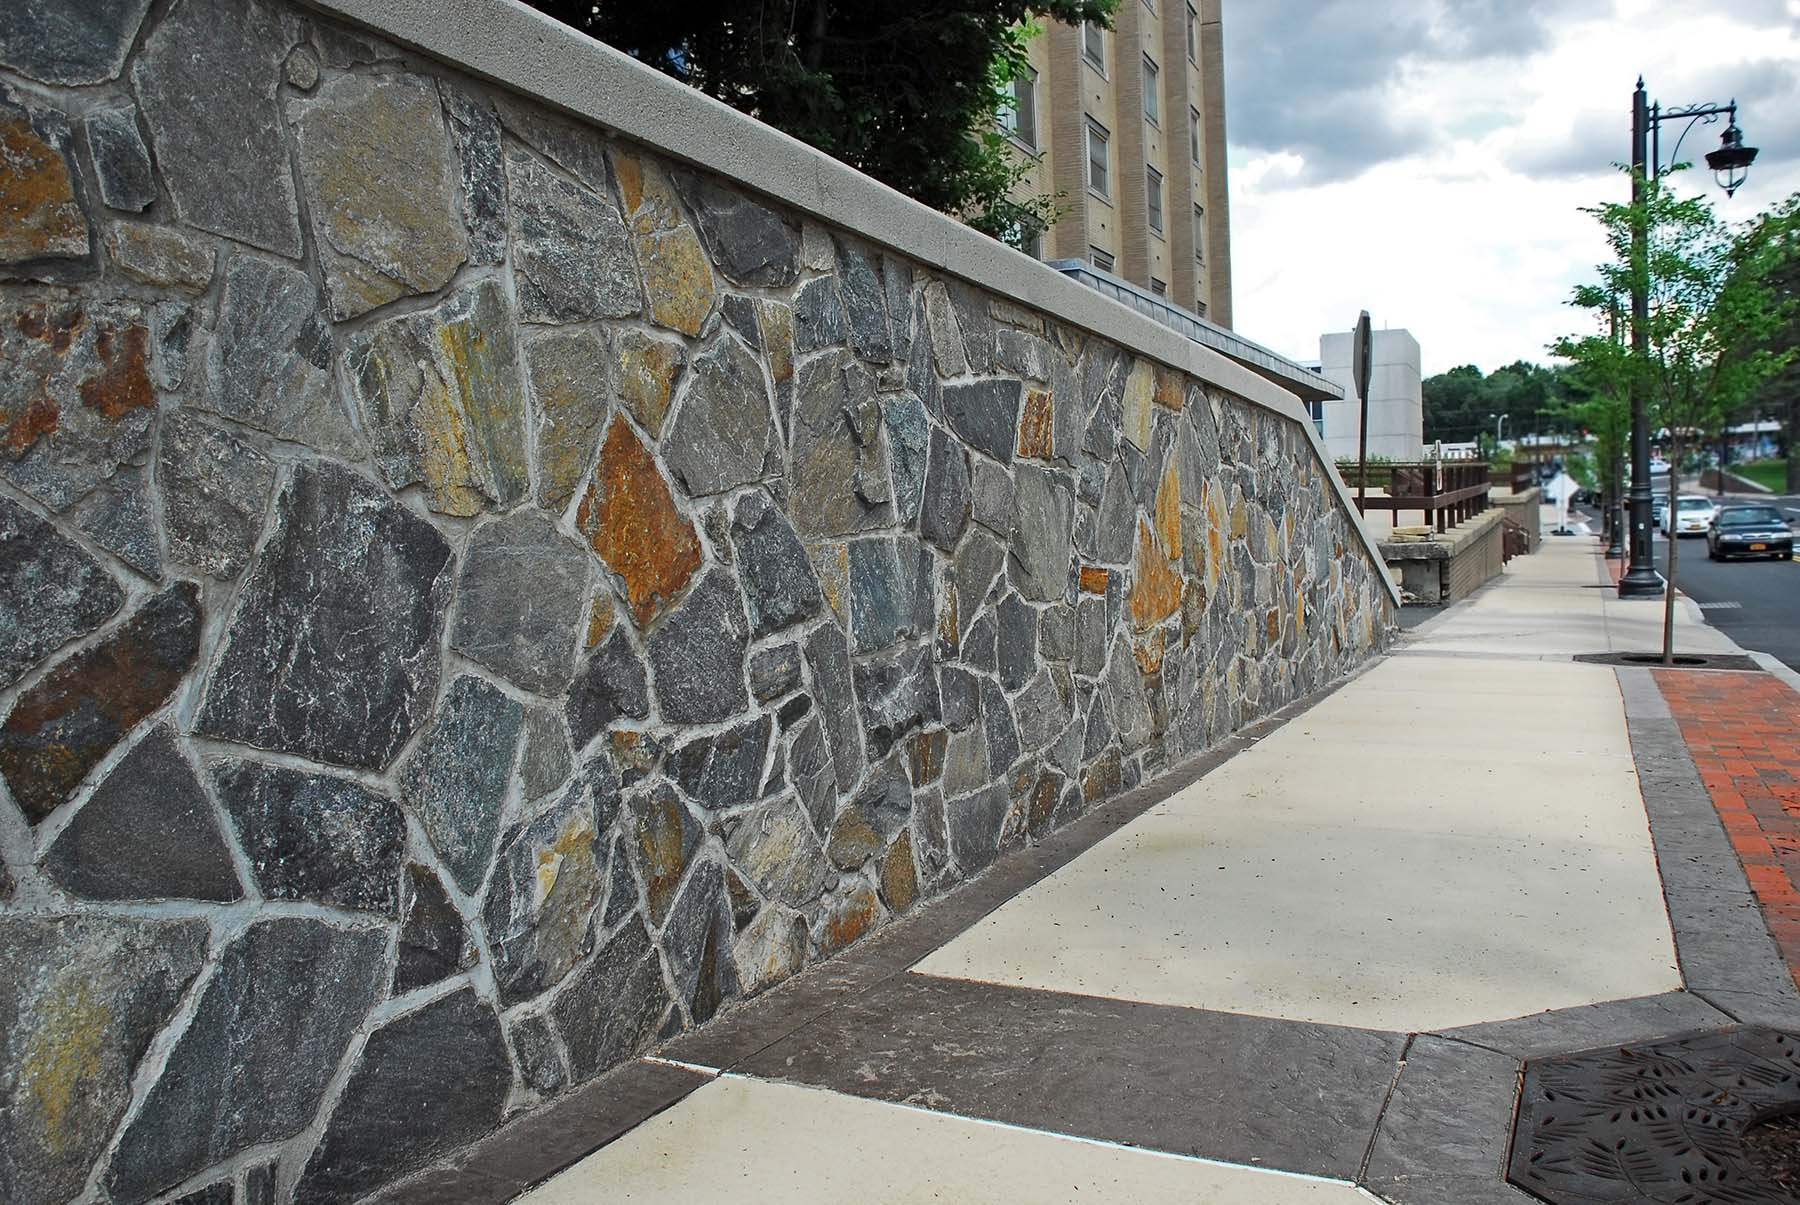 saratoga granite mosaic natural stone wall outside commercial building